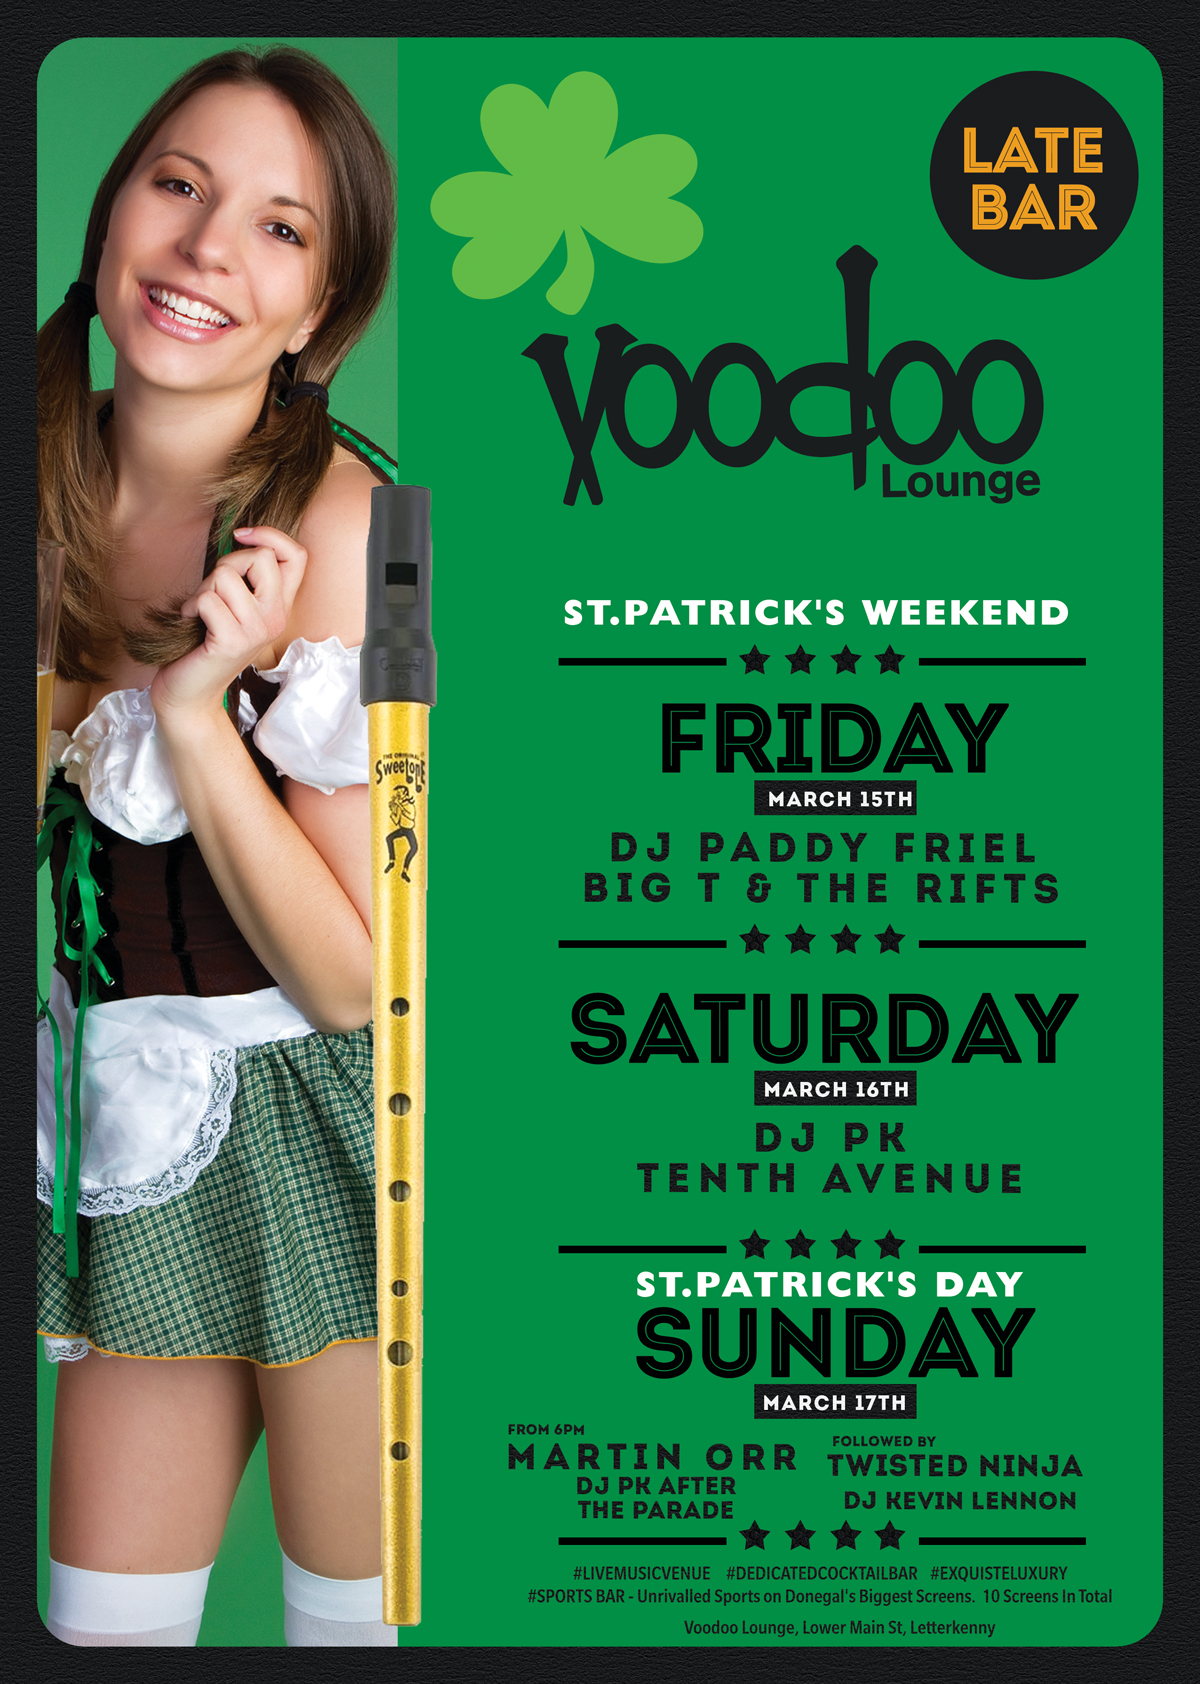 voodoo-lounge-opening-weekend---weekend-line-up-march-15---17-2019.jpg